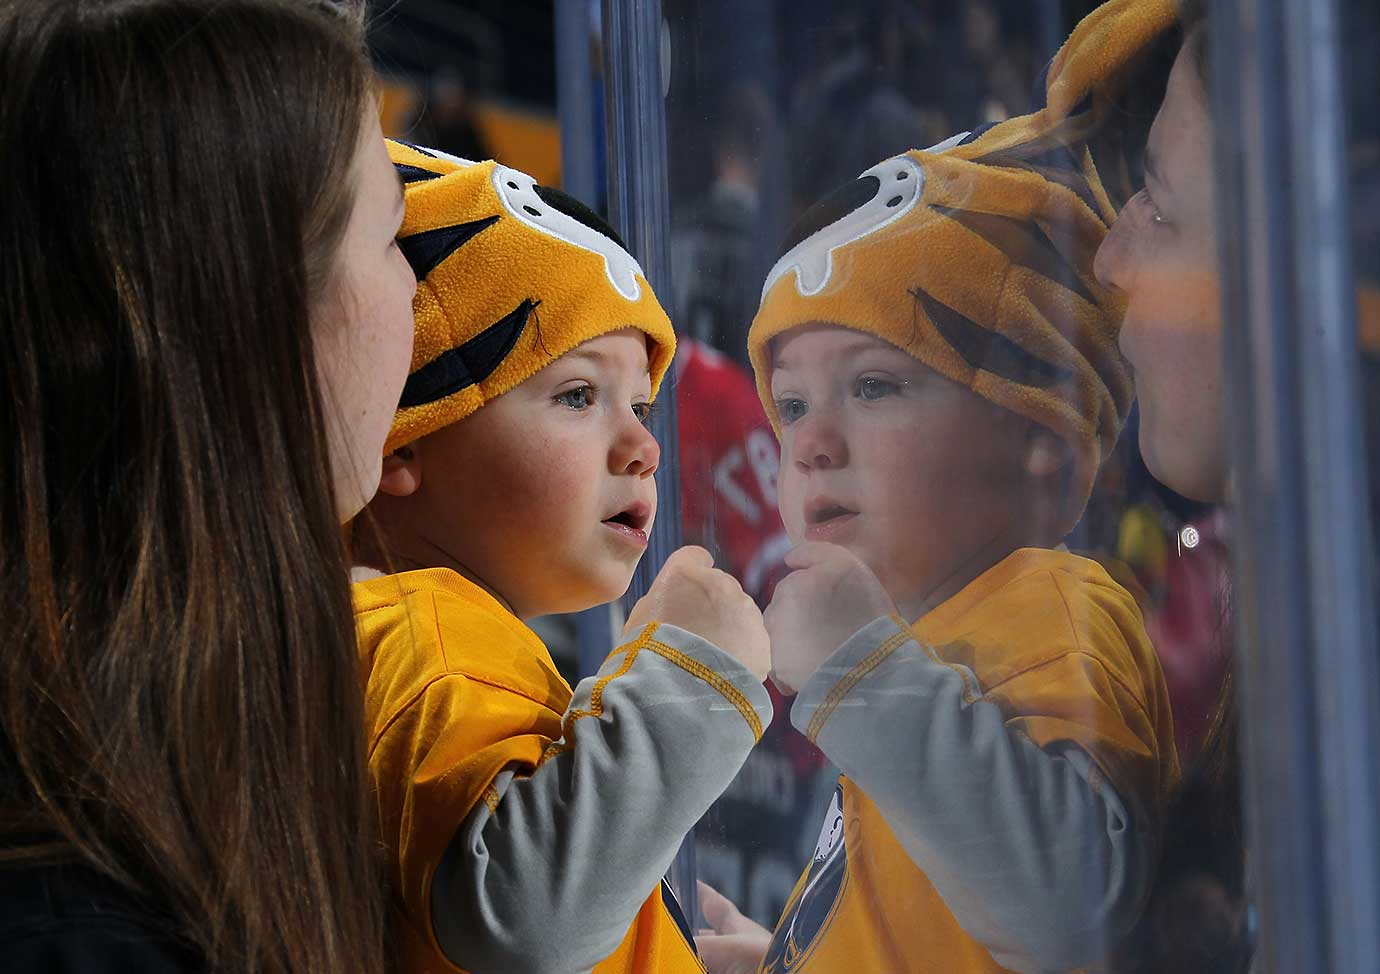 A young fan watches from the glass as the Buffalo Sabres play the Pittsburgh Penguins on Hockey Day in America.